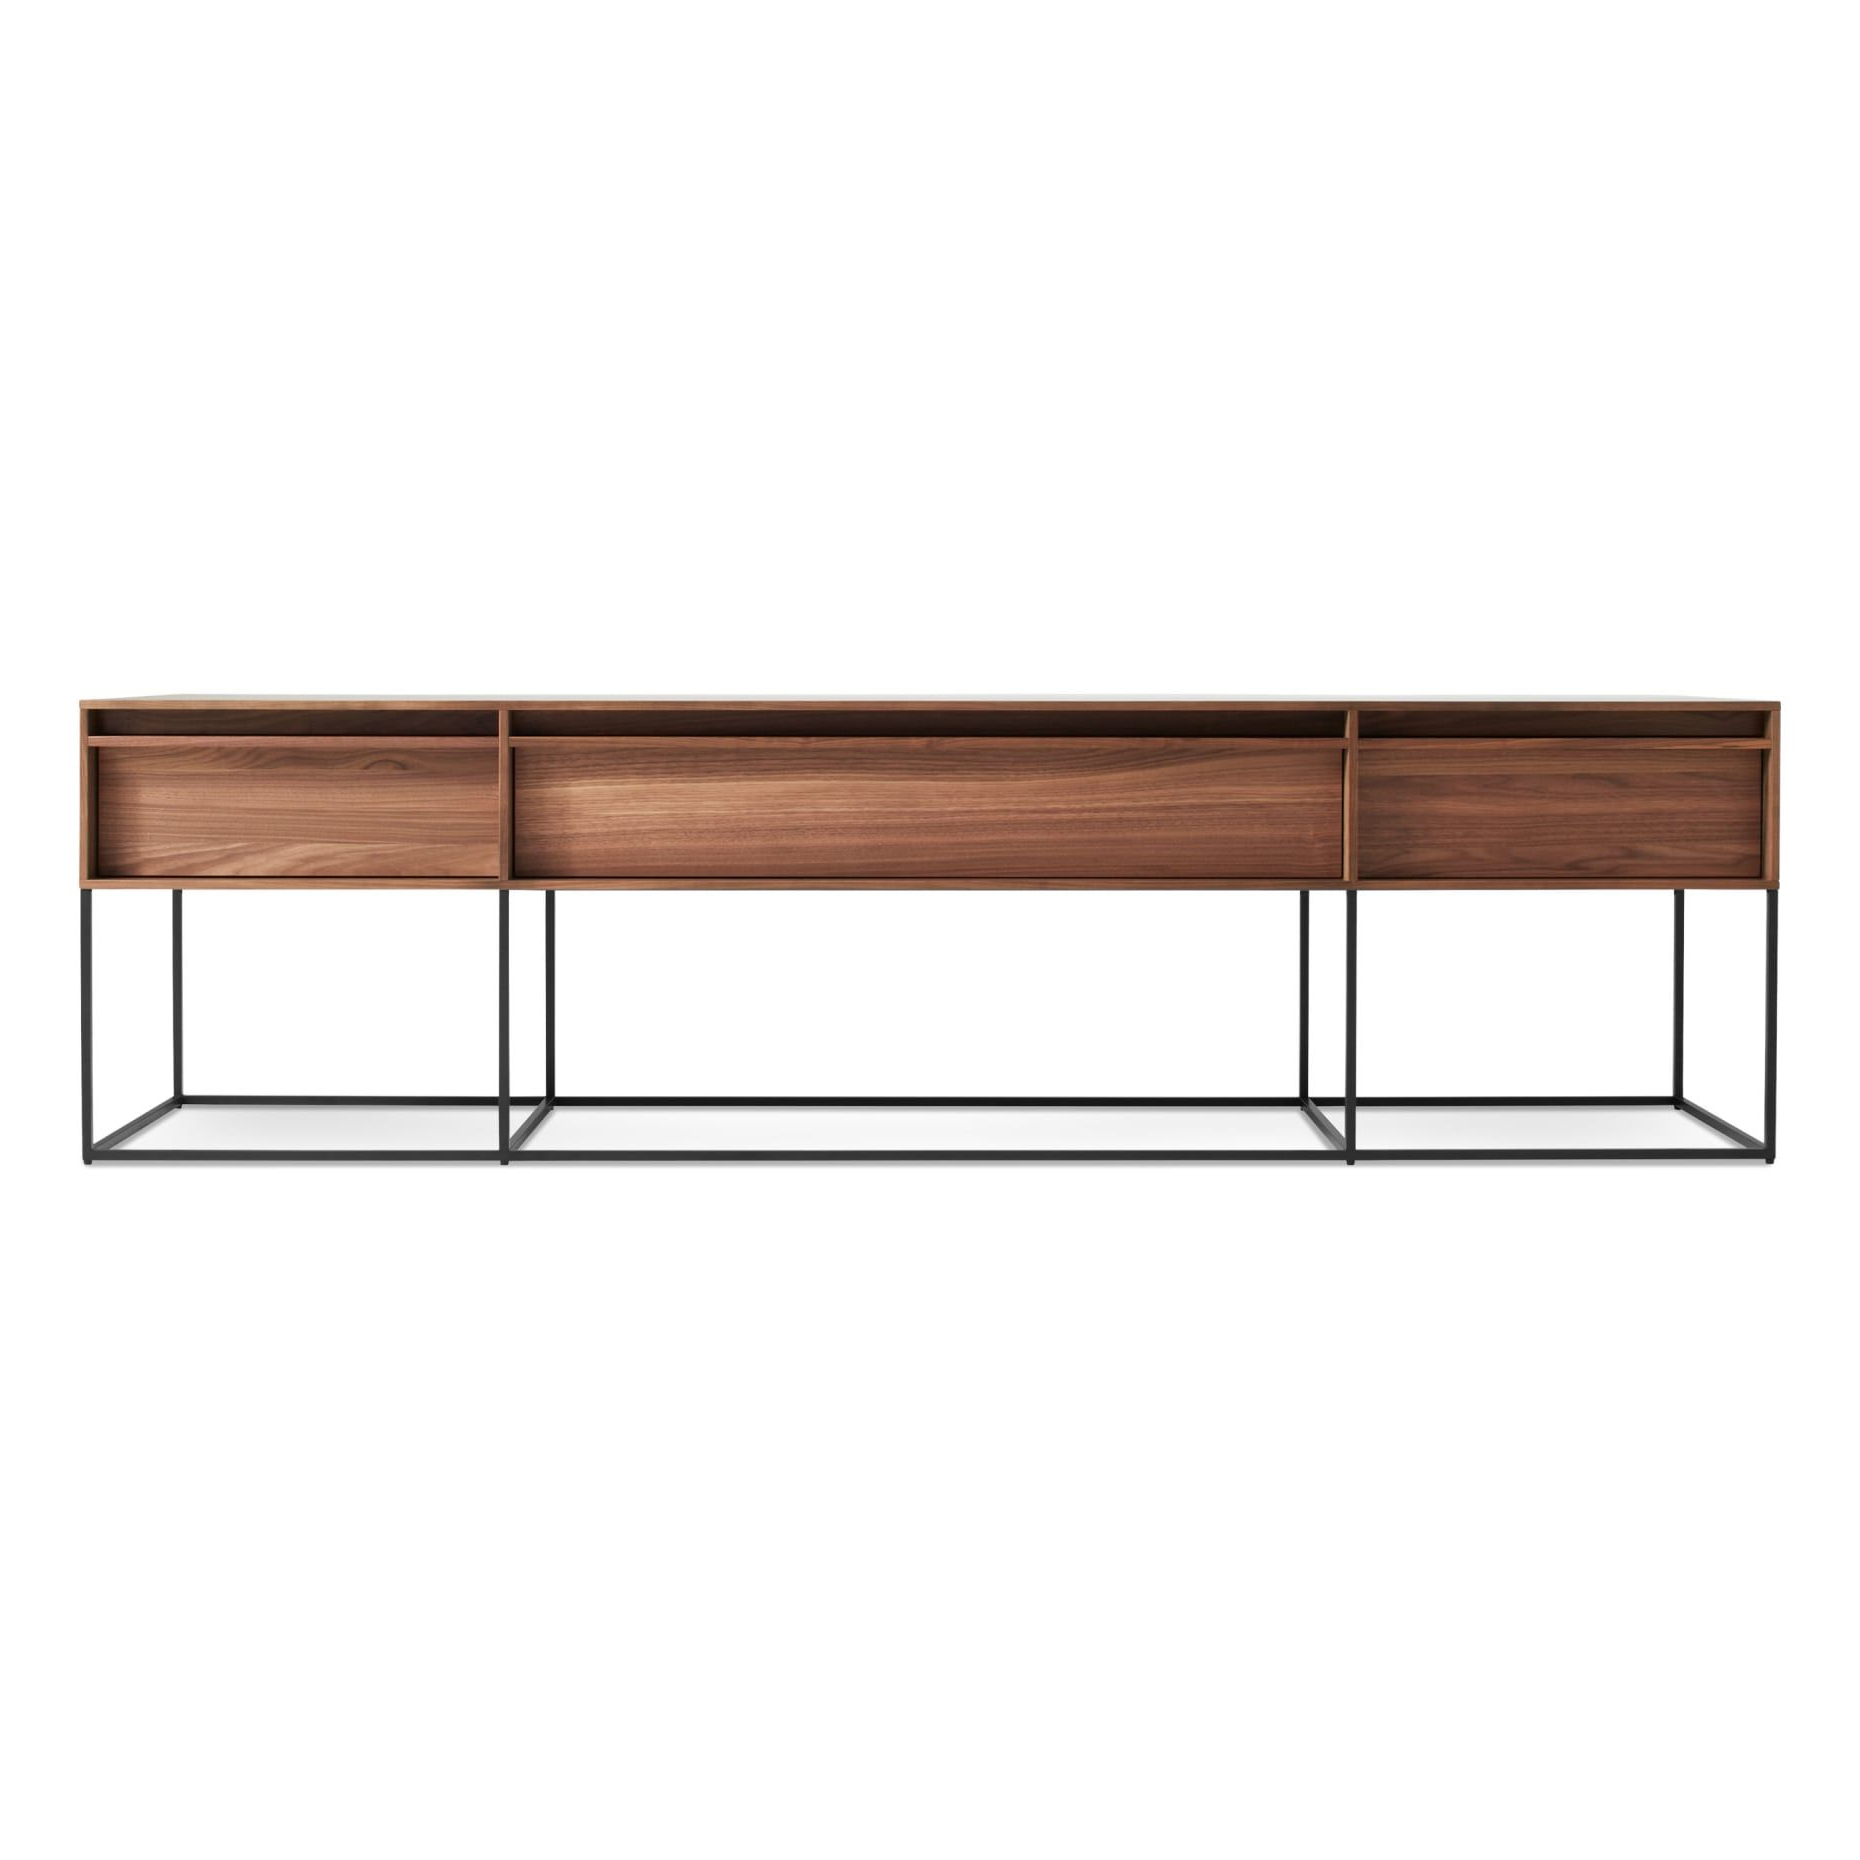 Rule Long And Low | F U R N I T U R E | Pinterest | Console Table Inside Oak & Brass Stacking Media Console Tables (View 9 of 20)